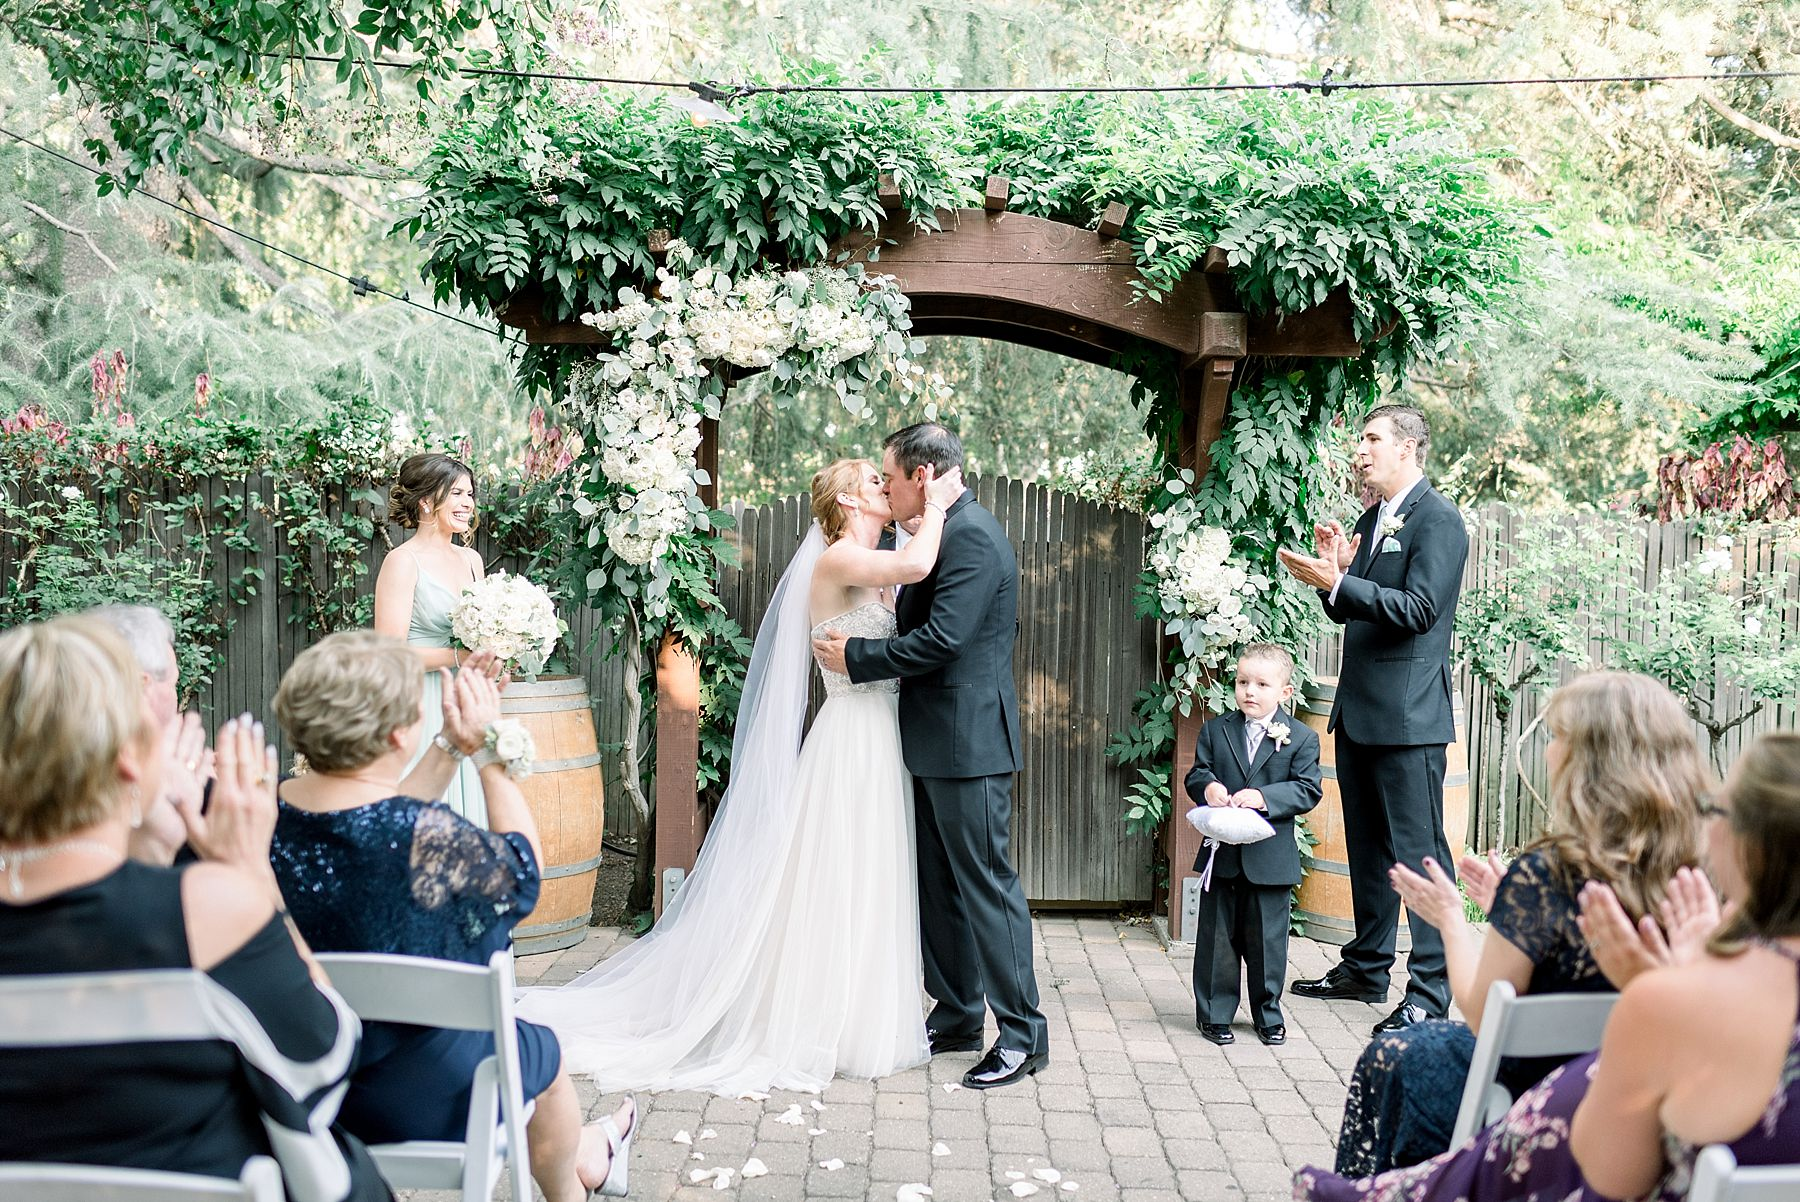 Wine and Roses Wedding - Wine and Roses Lodi Wedding Photographer - Sacramento Film Wedding Photographer - Ashley Baumgartner - Sacramento Luxury Wedding Photographer_0037.jpg